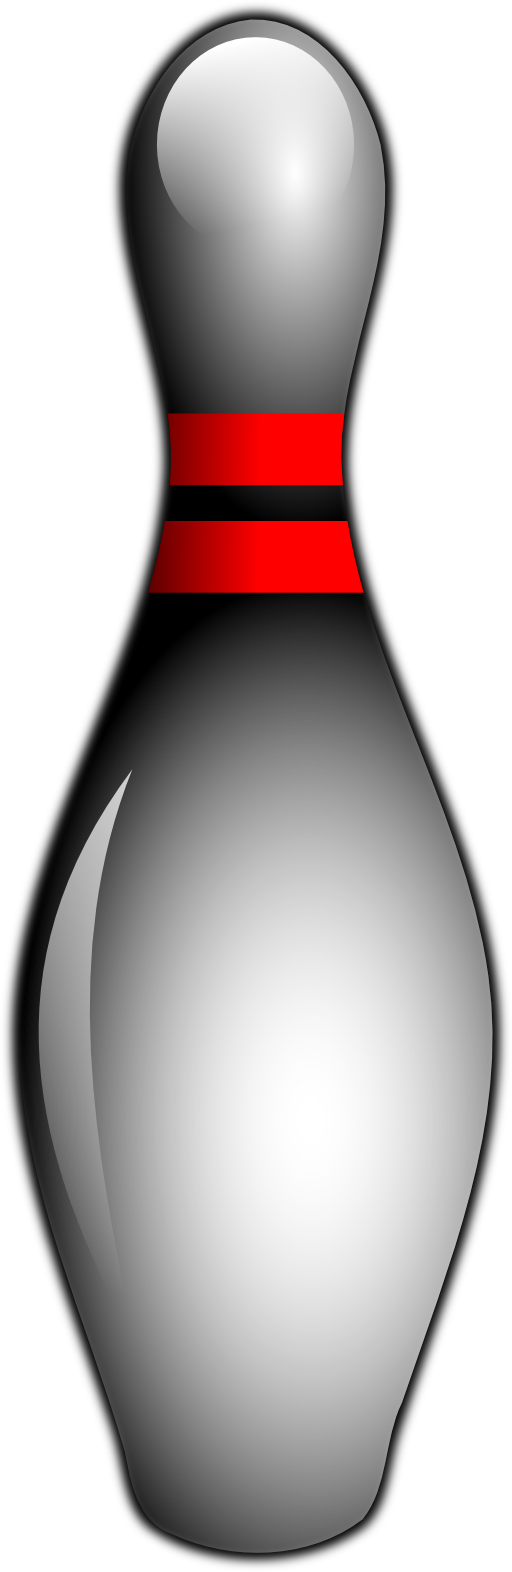 512x1572 Free Bowling Pins Pictures, Hanslodge Clip Art Collection